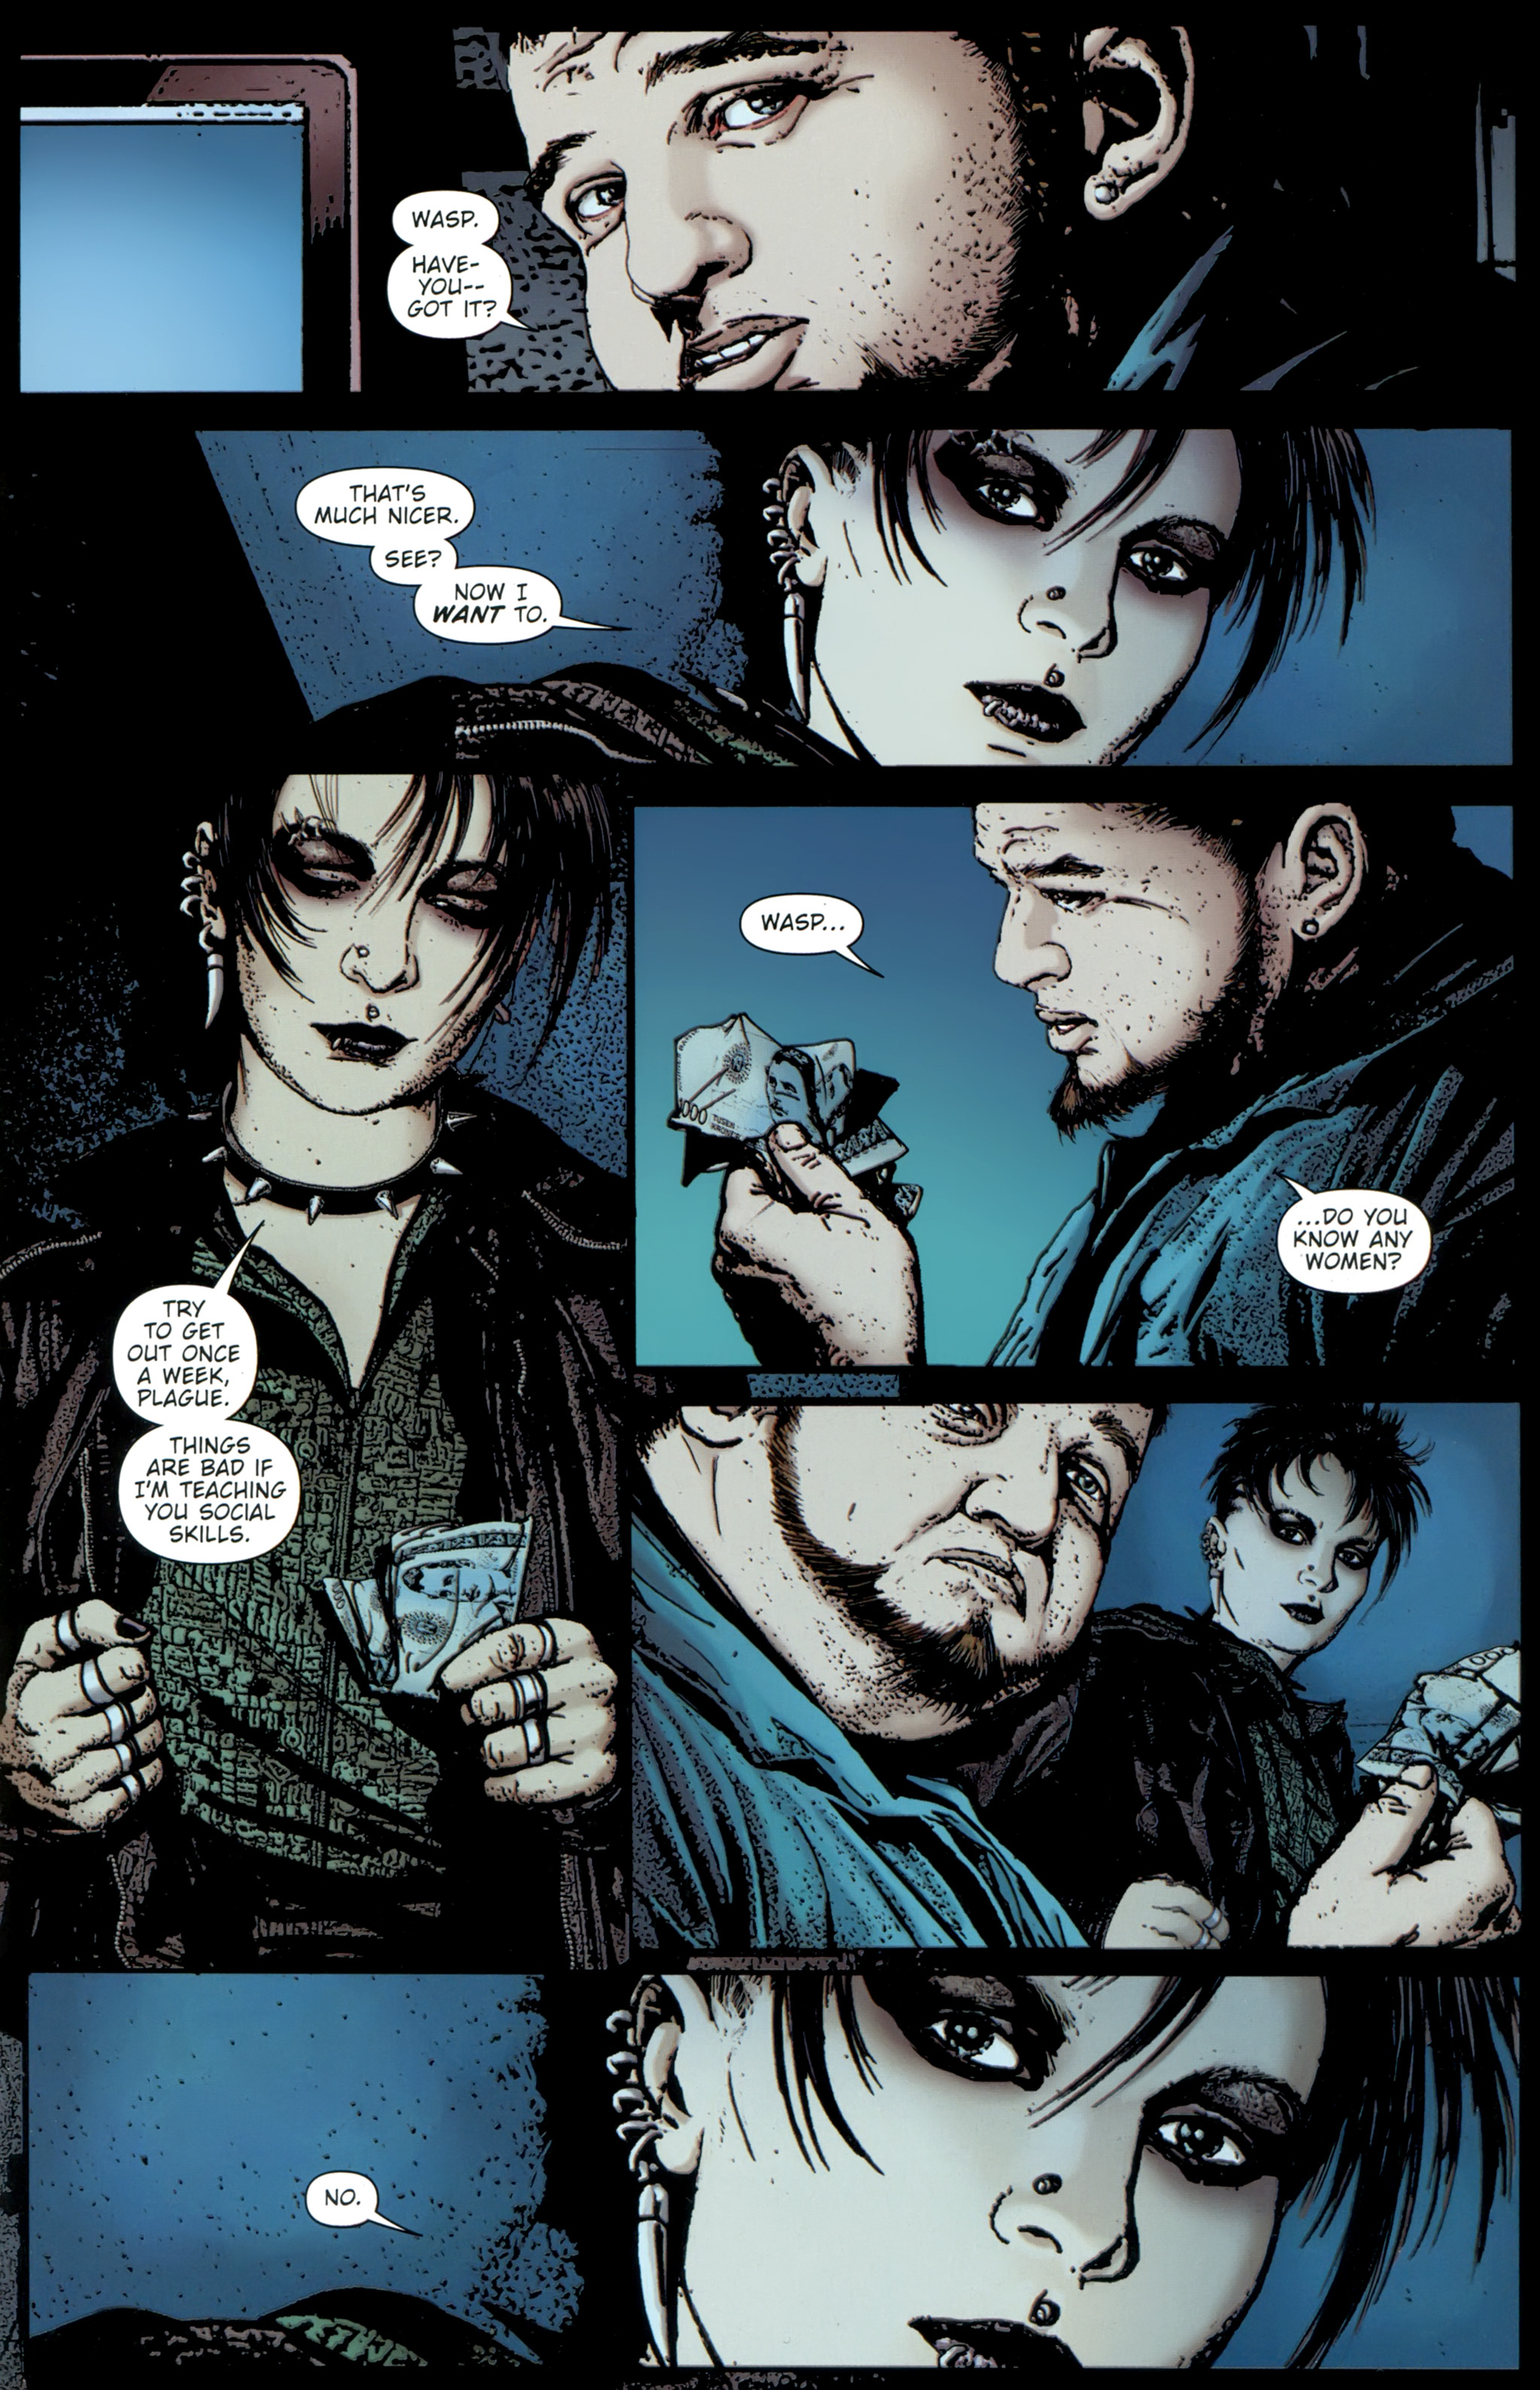 Read online The Girl With the Dragon Tattoo comic -  Issue # TPB 1 - 64